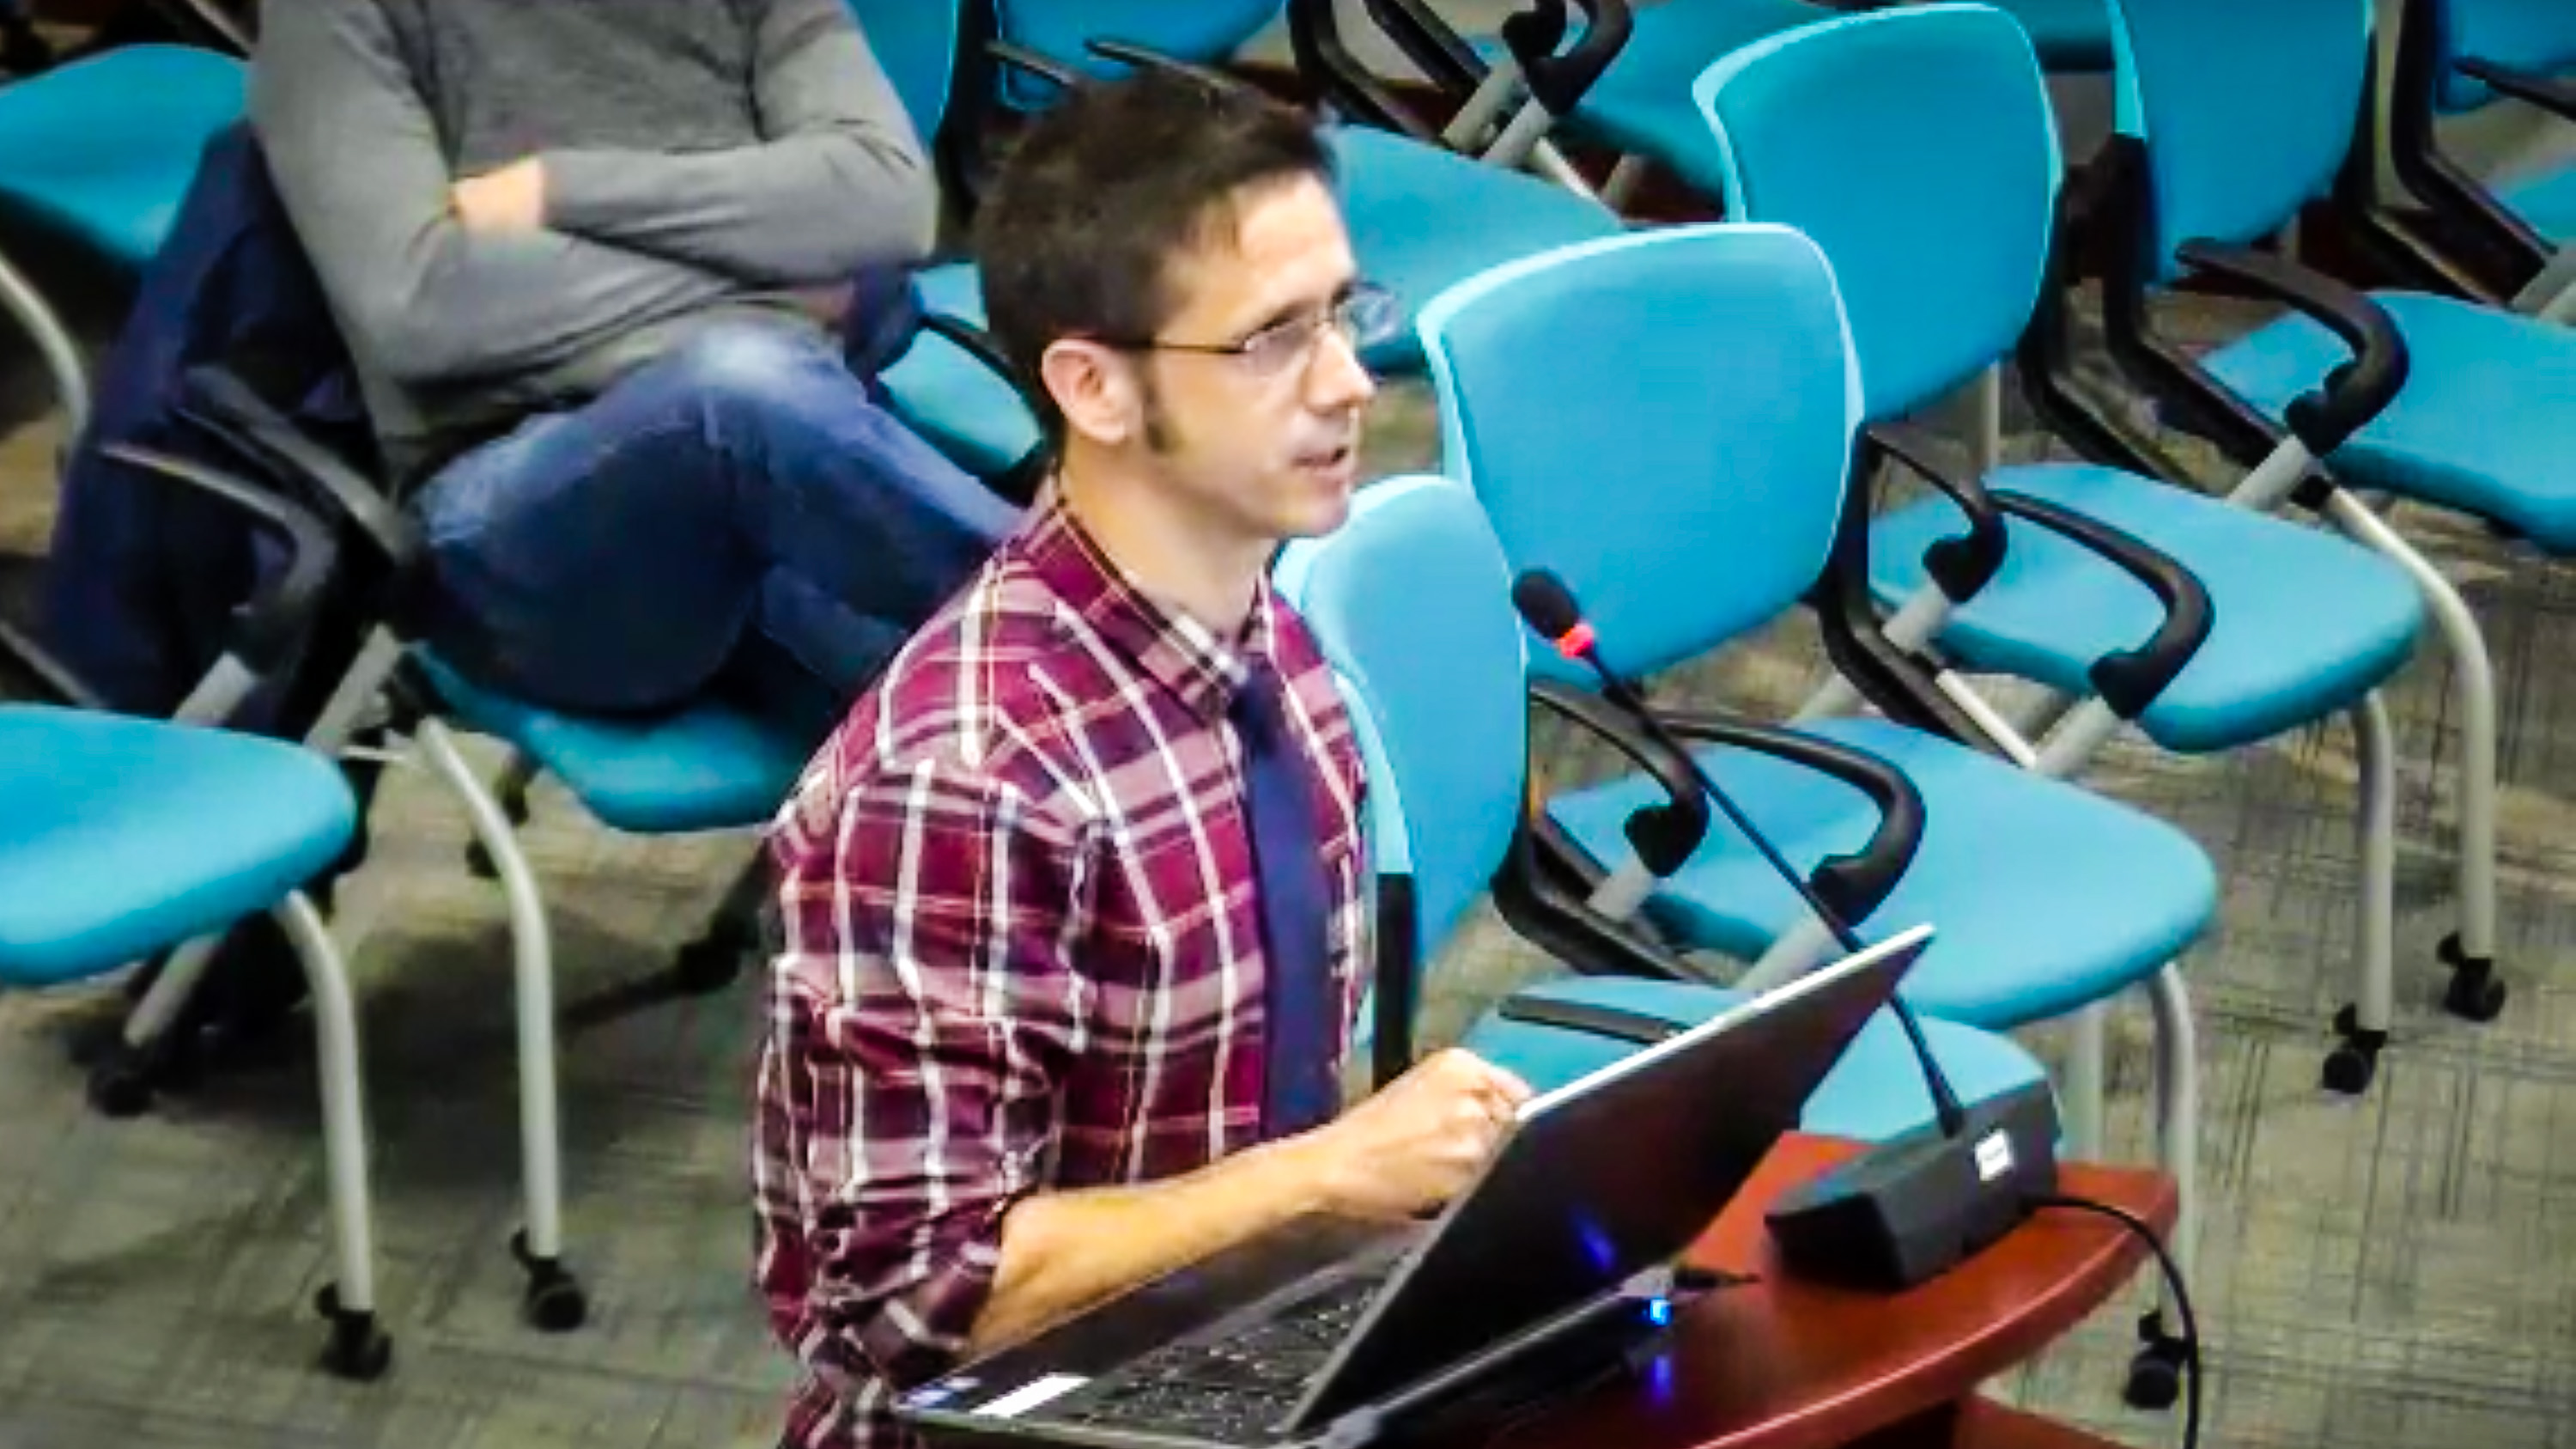 John Mutford, from Yellowknife's public library, presents to councillors on January 21, 2019